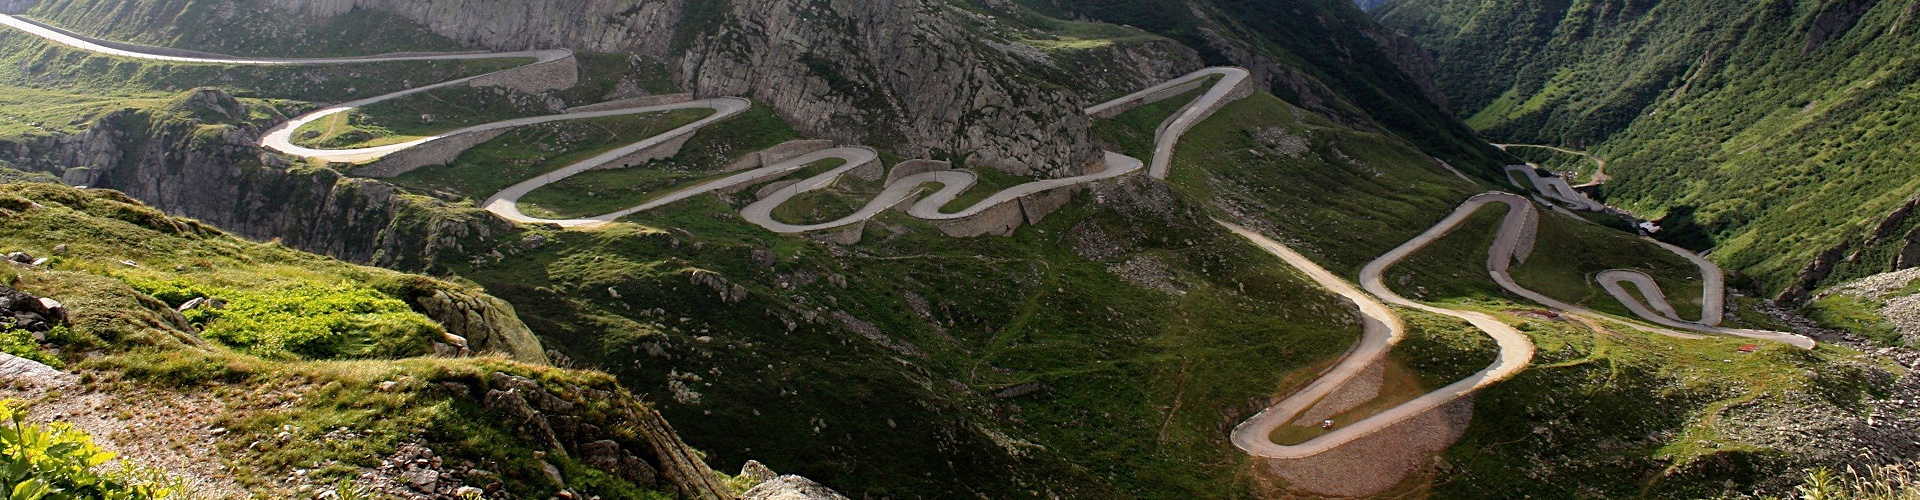 RIDE THE BEST ROADS IN EUROPE